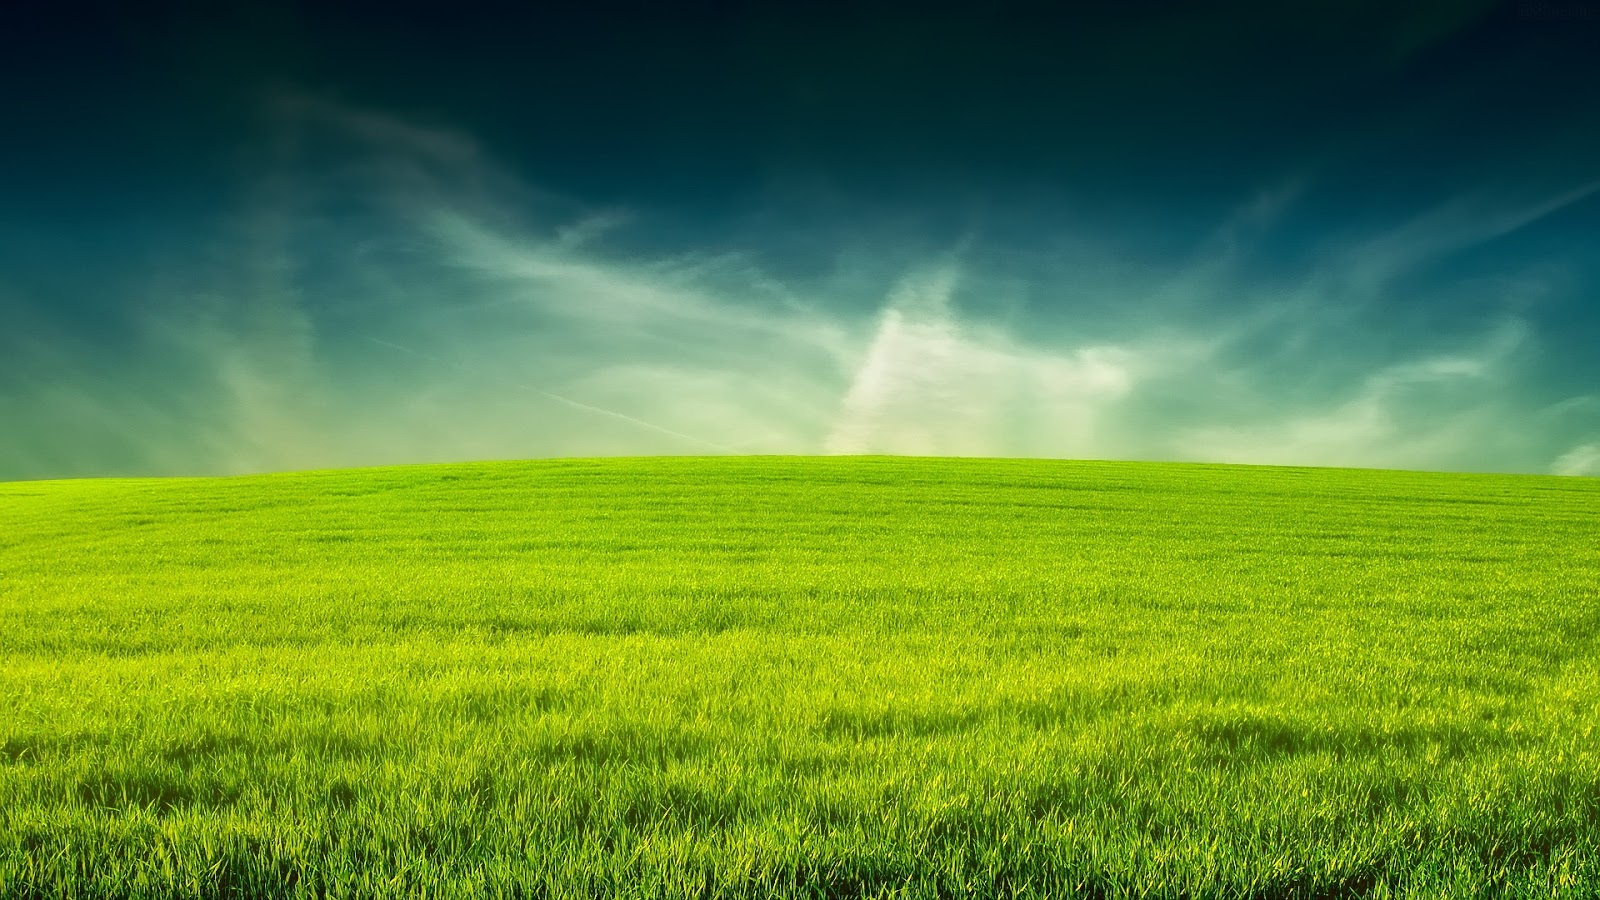 green hill hd wallpaper - hd wallpapers - 9to5wallpapers